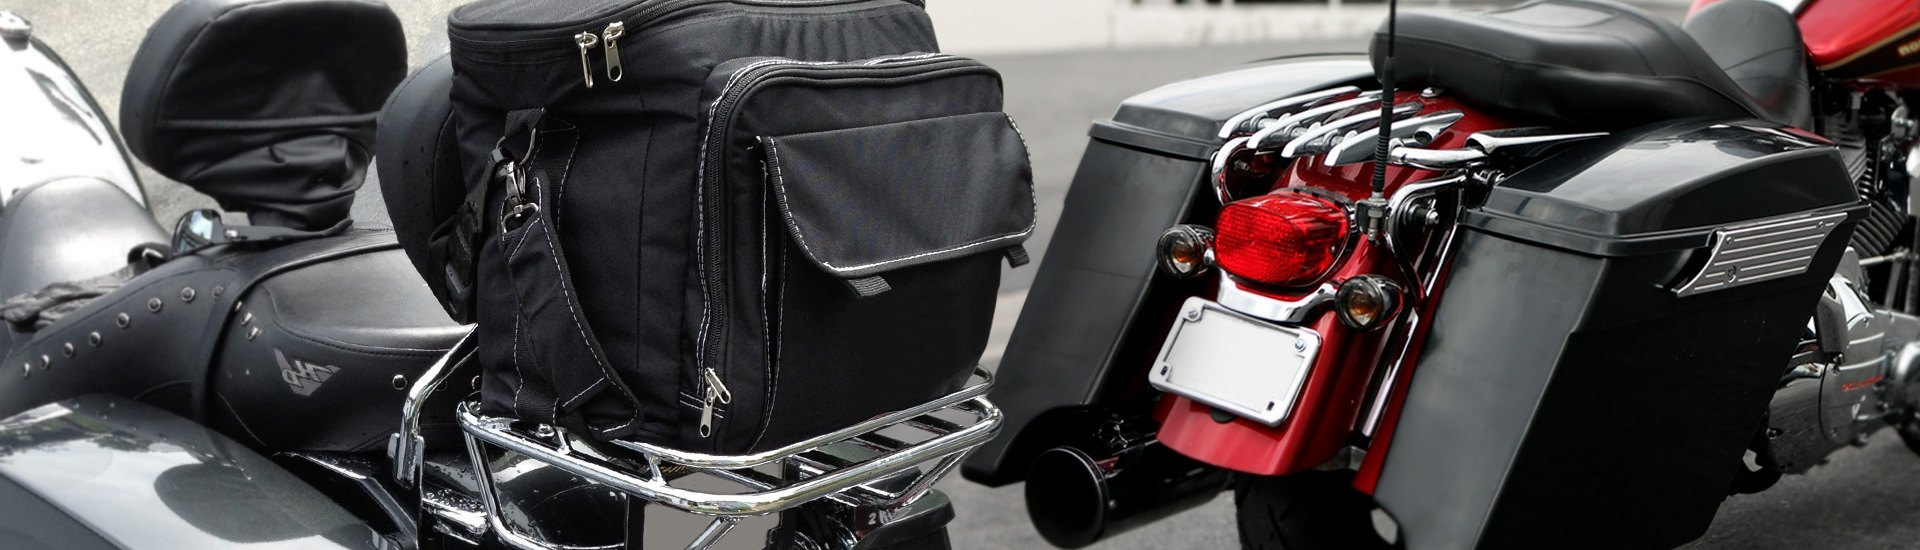 indian scout motorcycle luggage systems